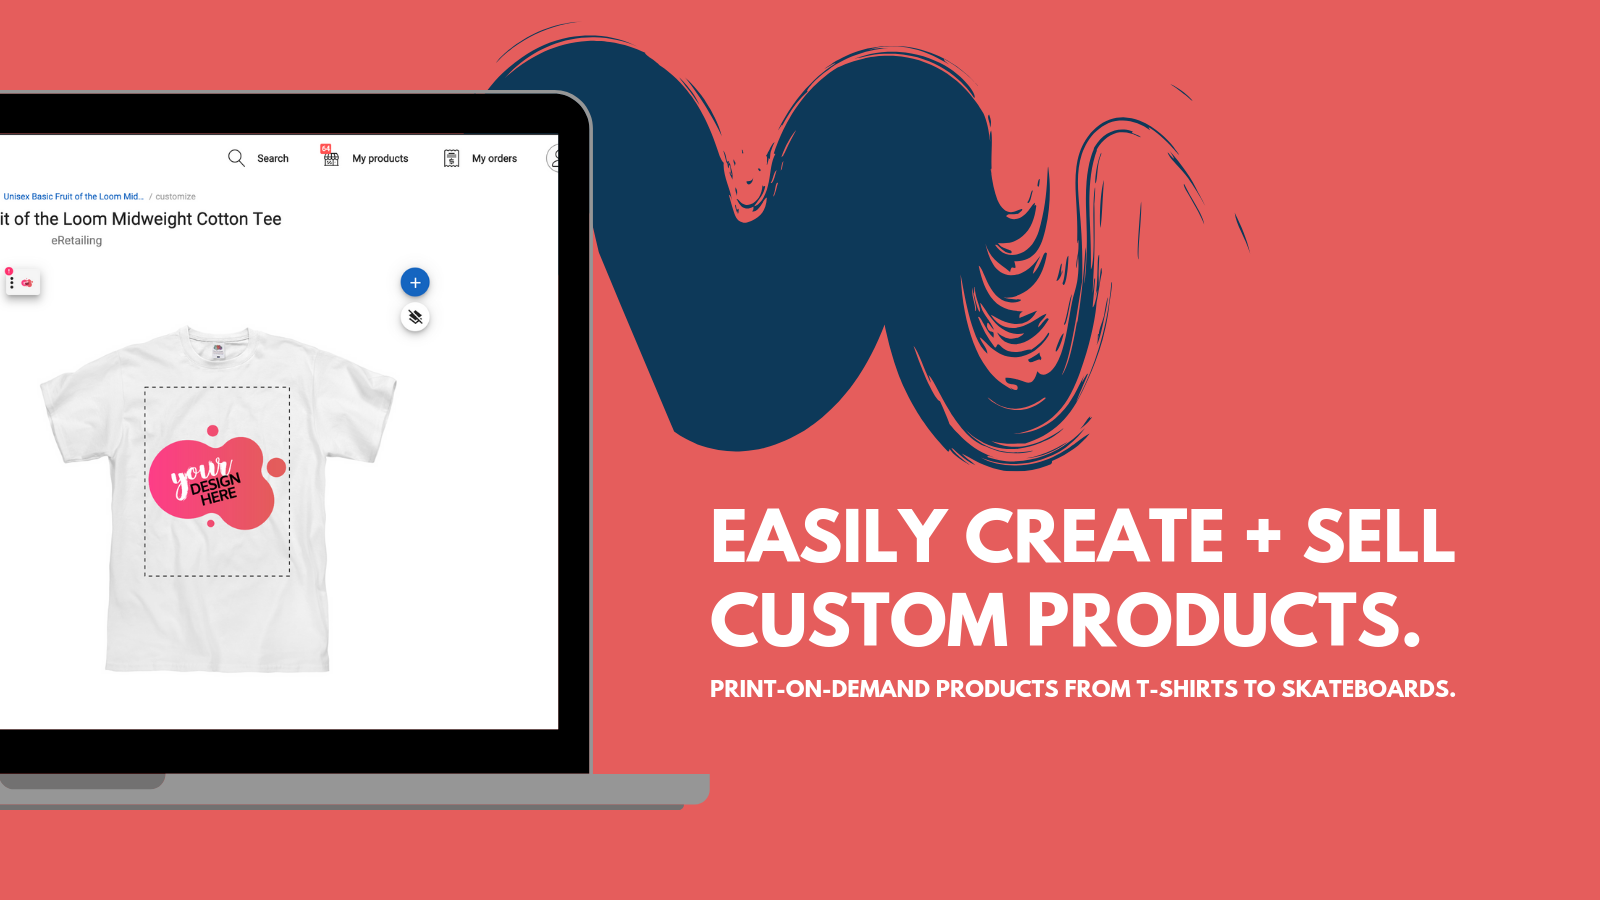 Print on Demand Products